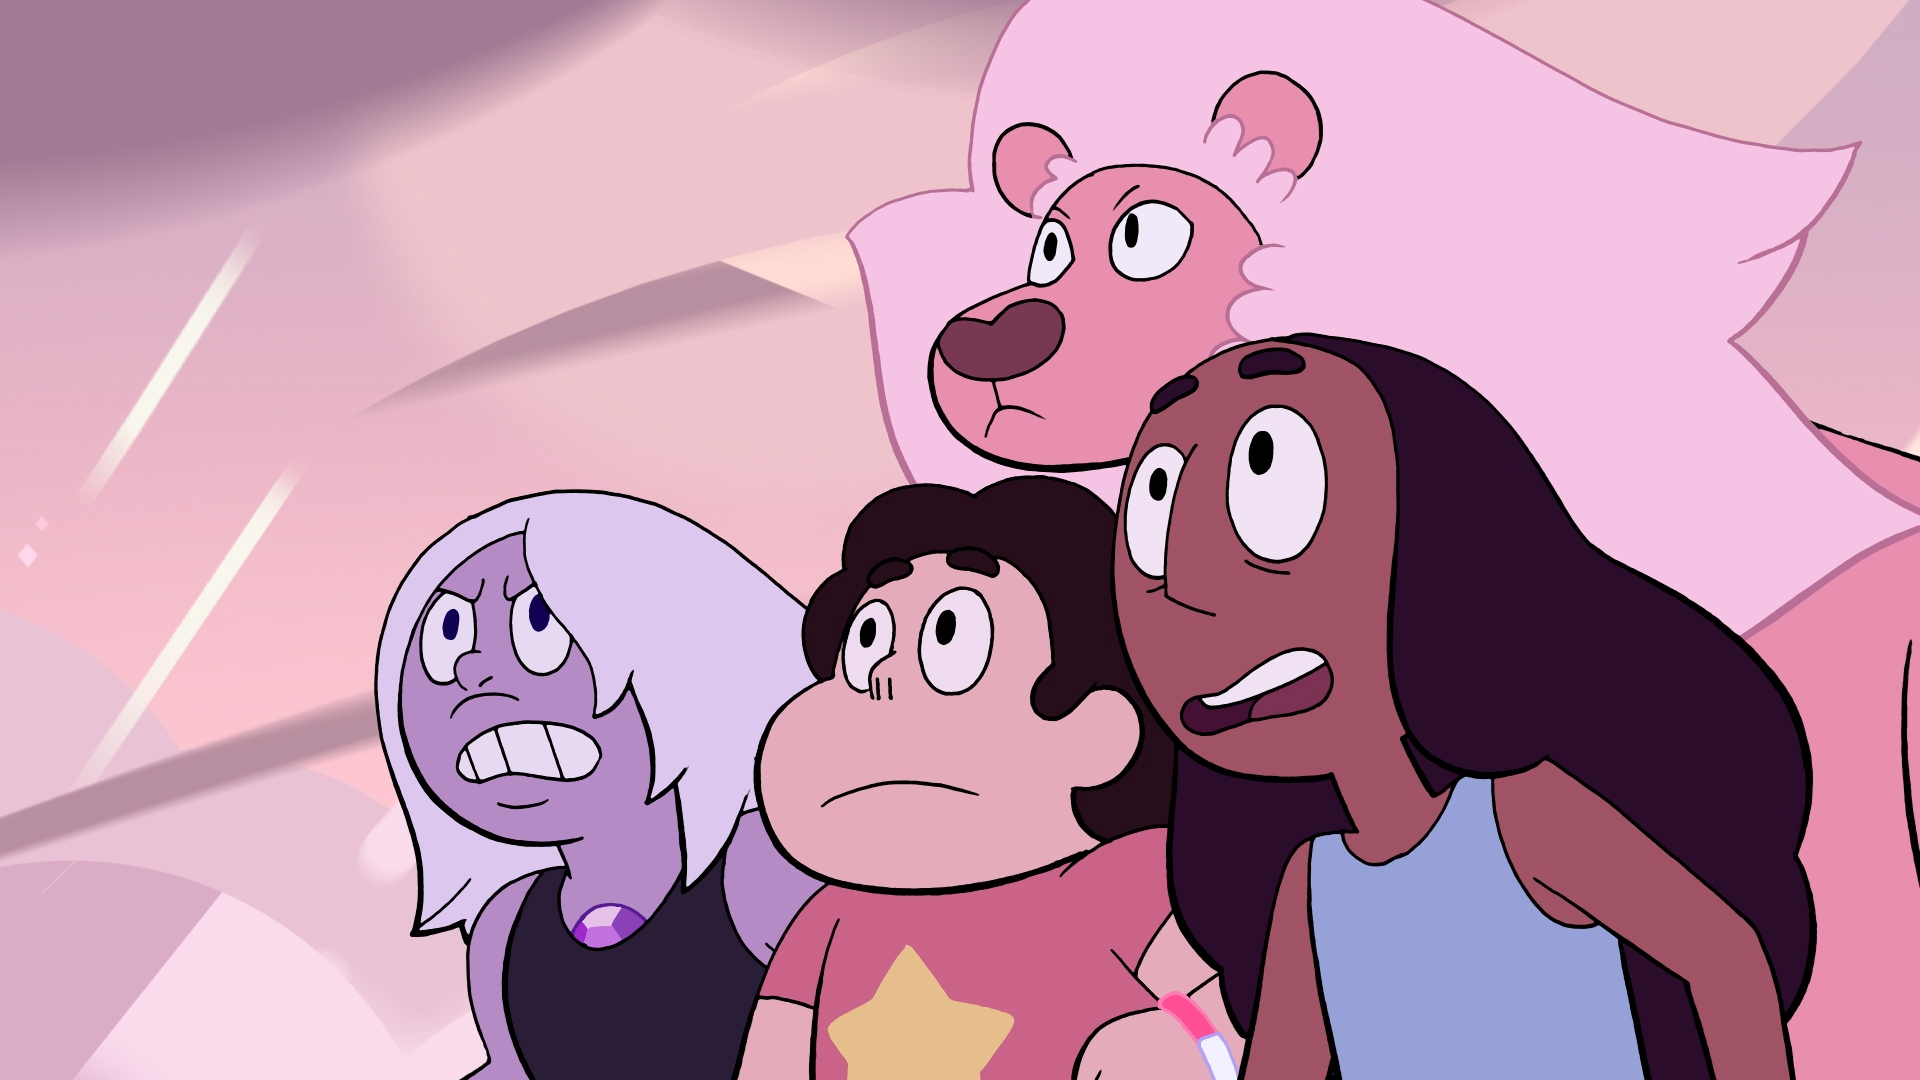 Crack the Whip Steven Universe